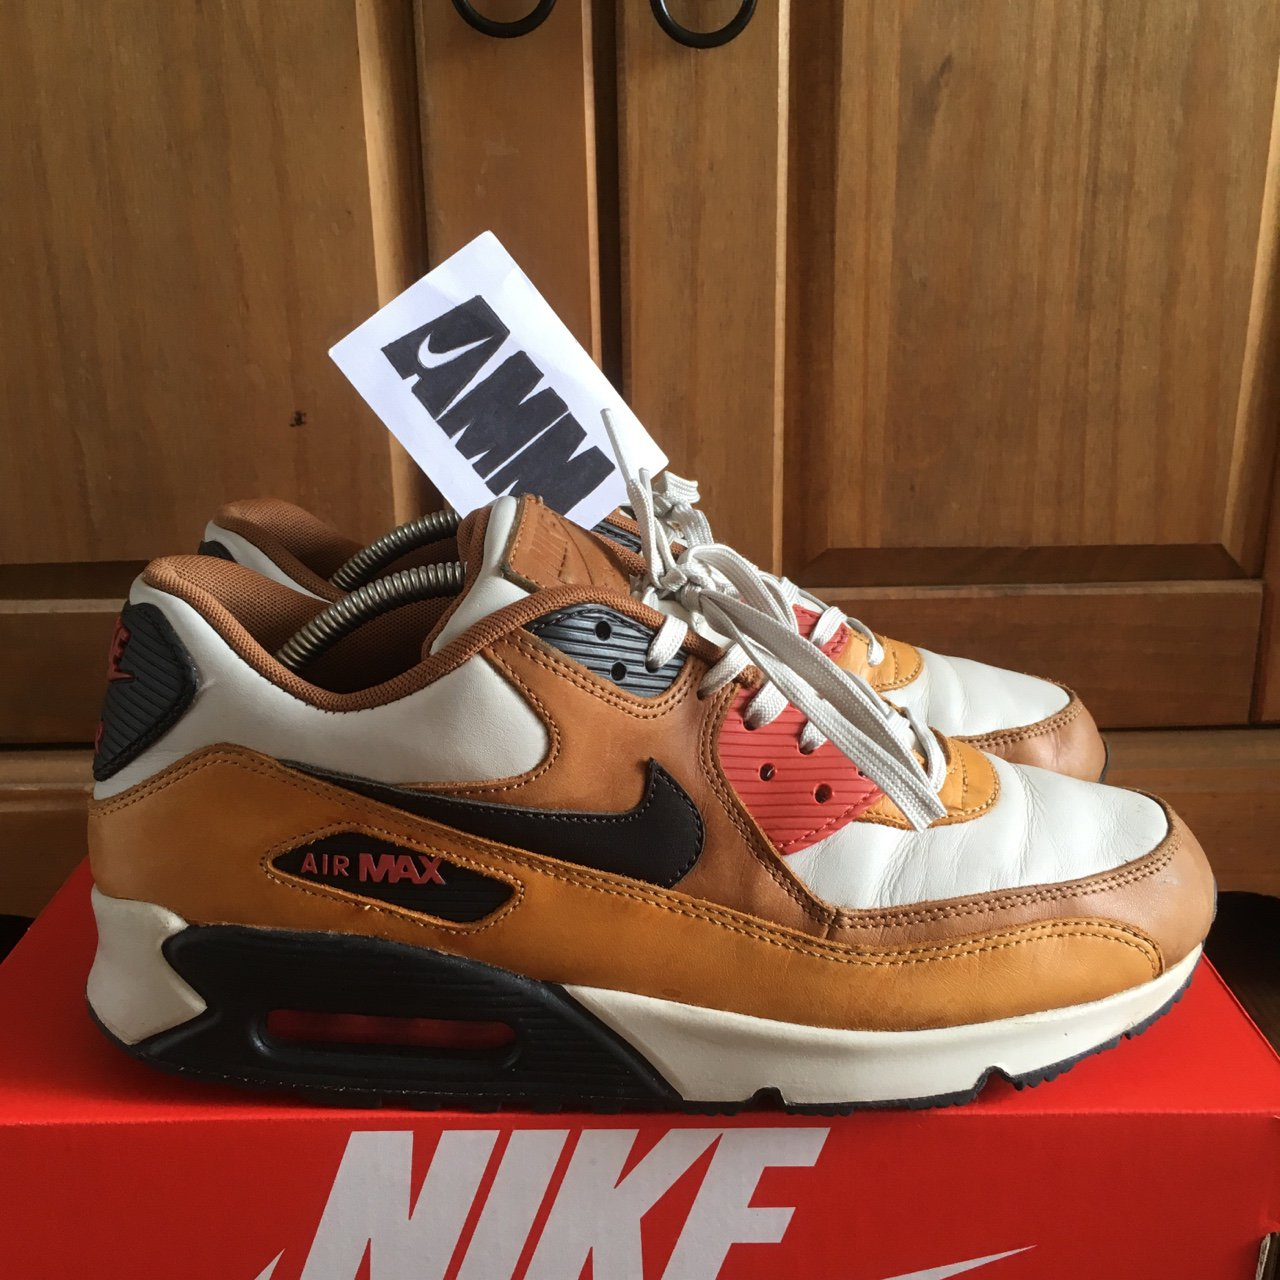 reputable site 5ef7e 7f105 @airmaxmarket. 2 years ago. Ipswich, United Kingdom. Nike Air Max 90 QS  Escape Pack